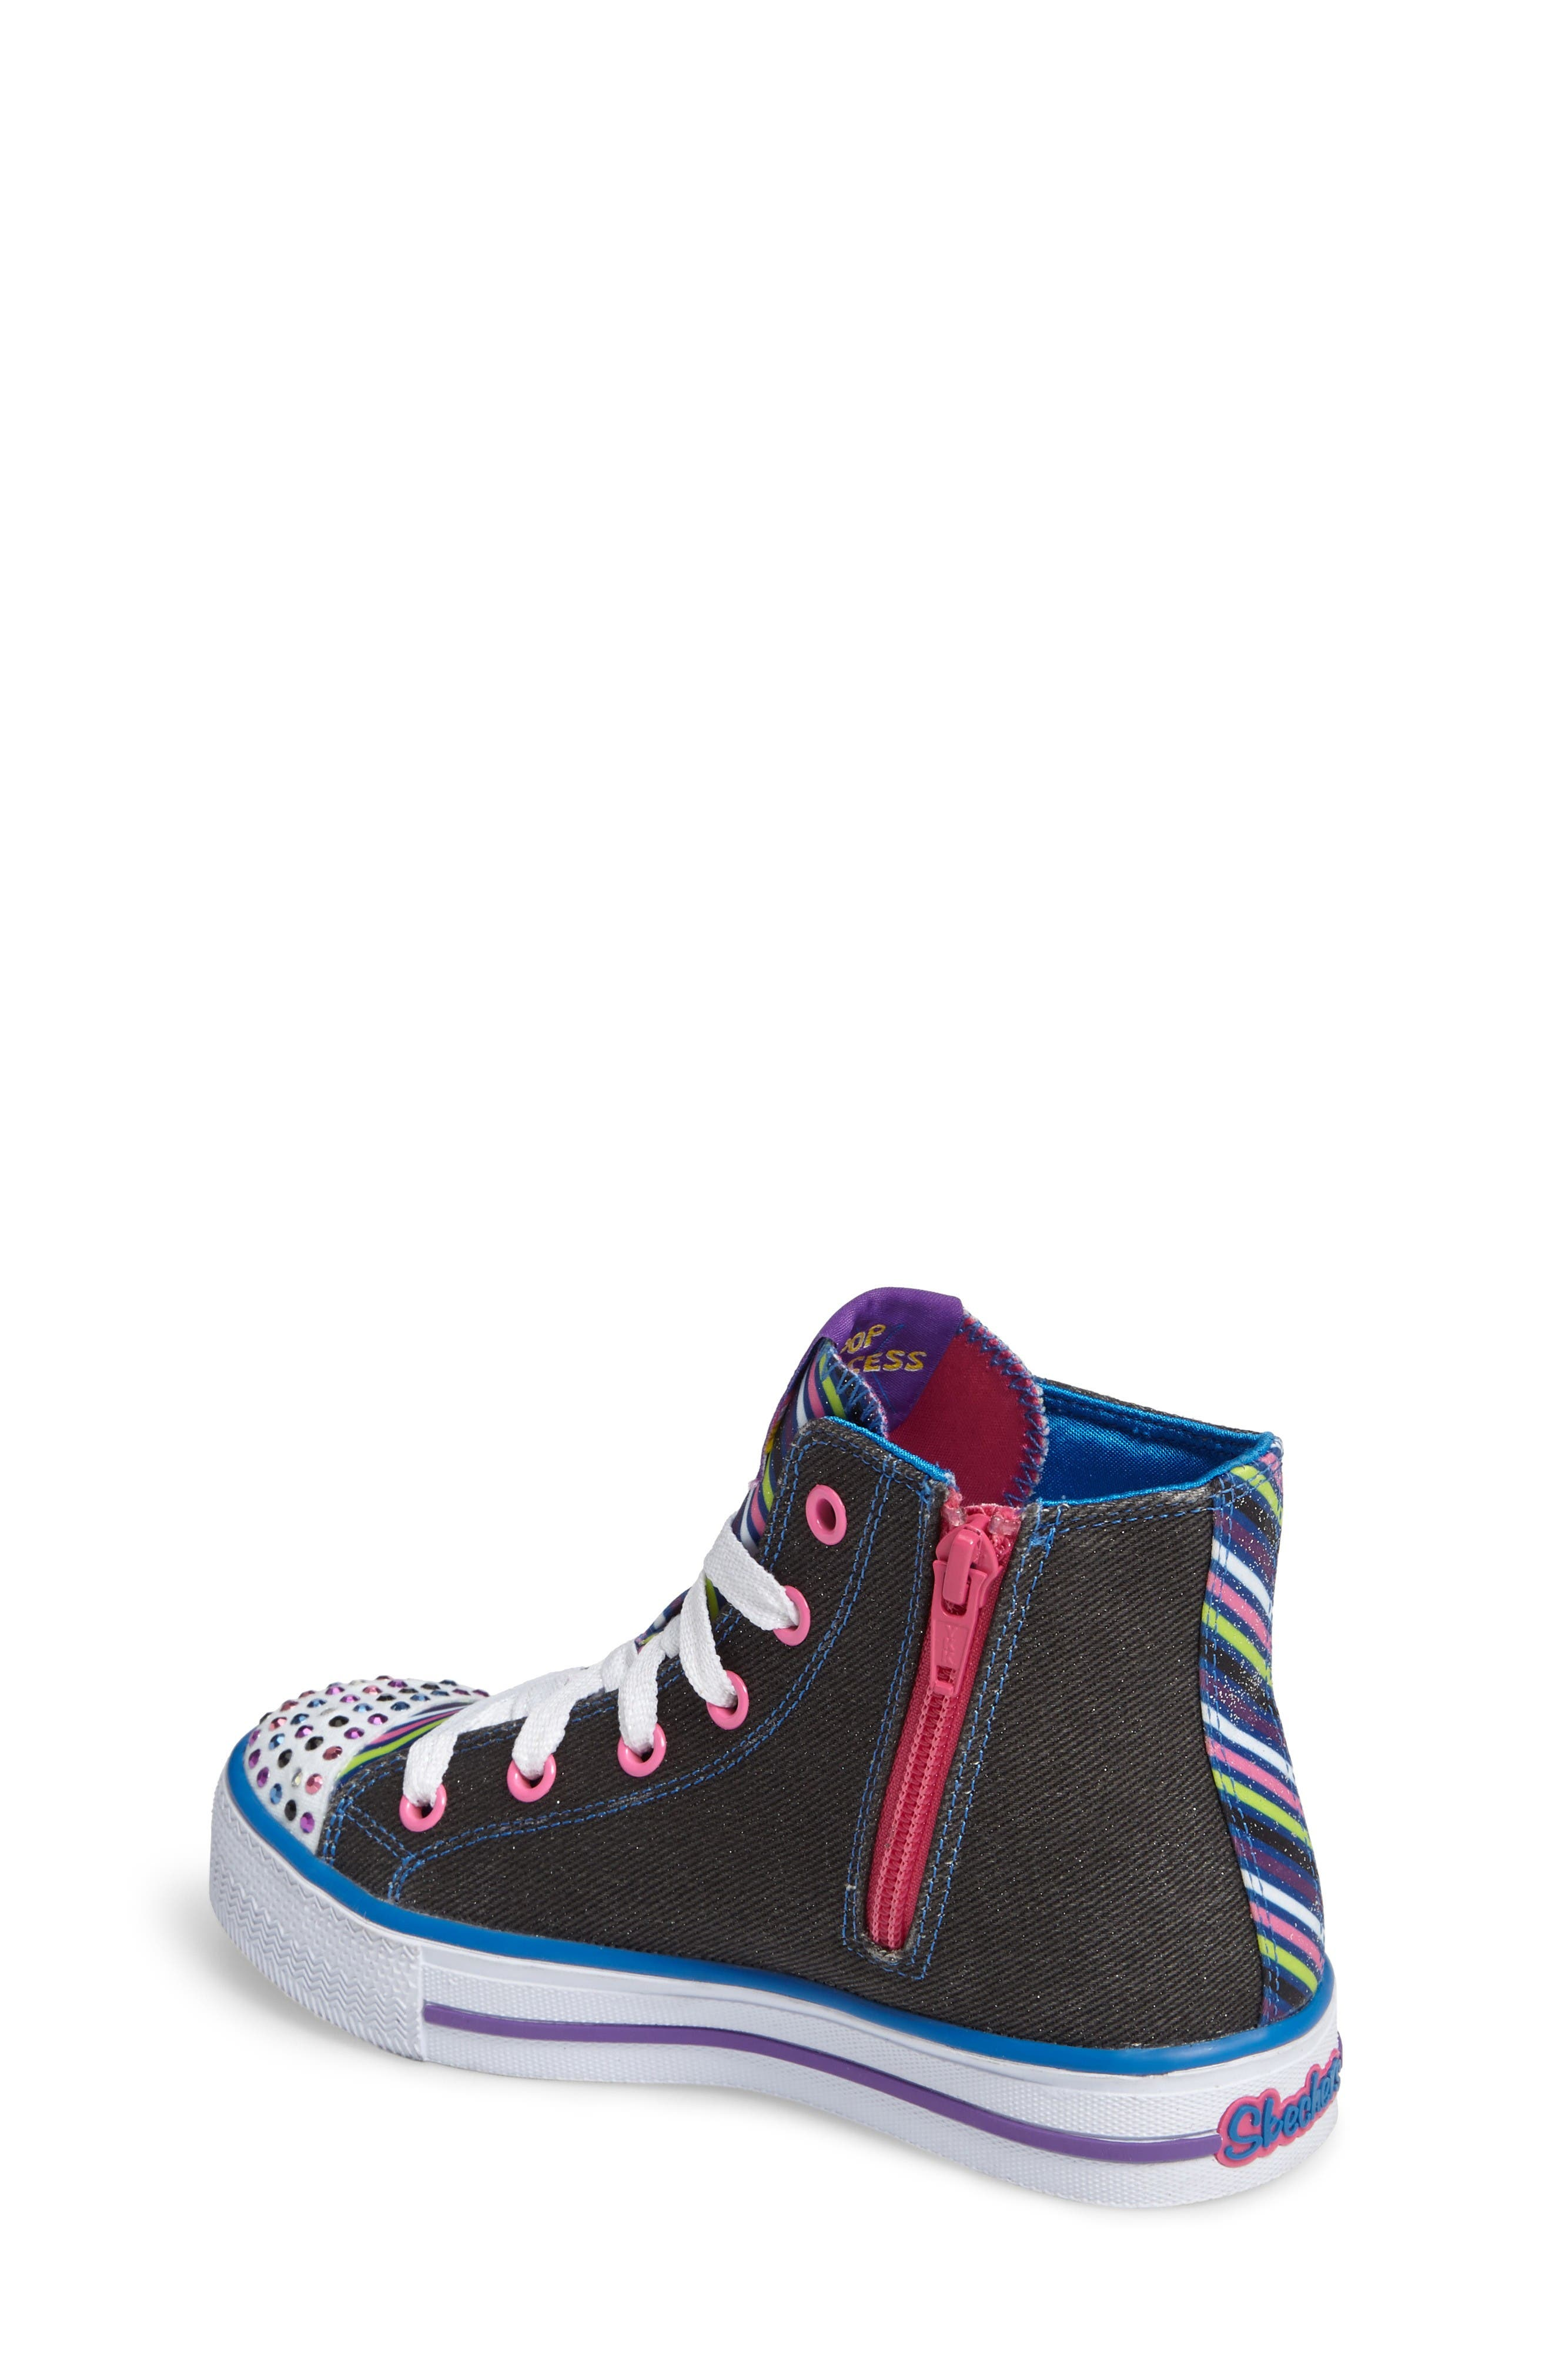 Twinkle Toes Shuffles Light-Up High Top Sneaker,                             Alternate thumbnail 2, color,                             Black Canvas